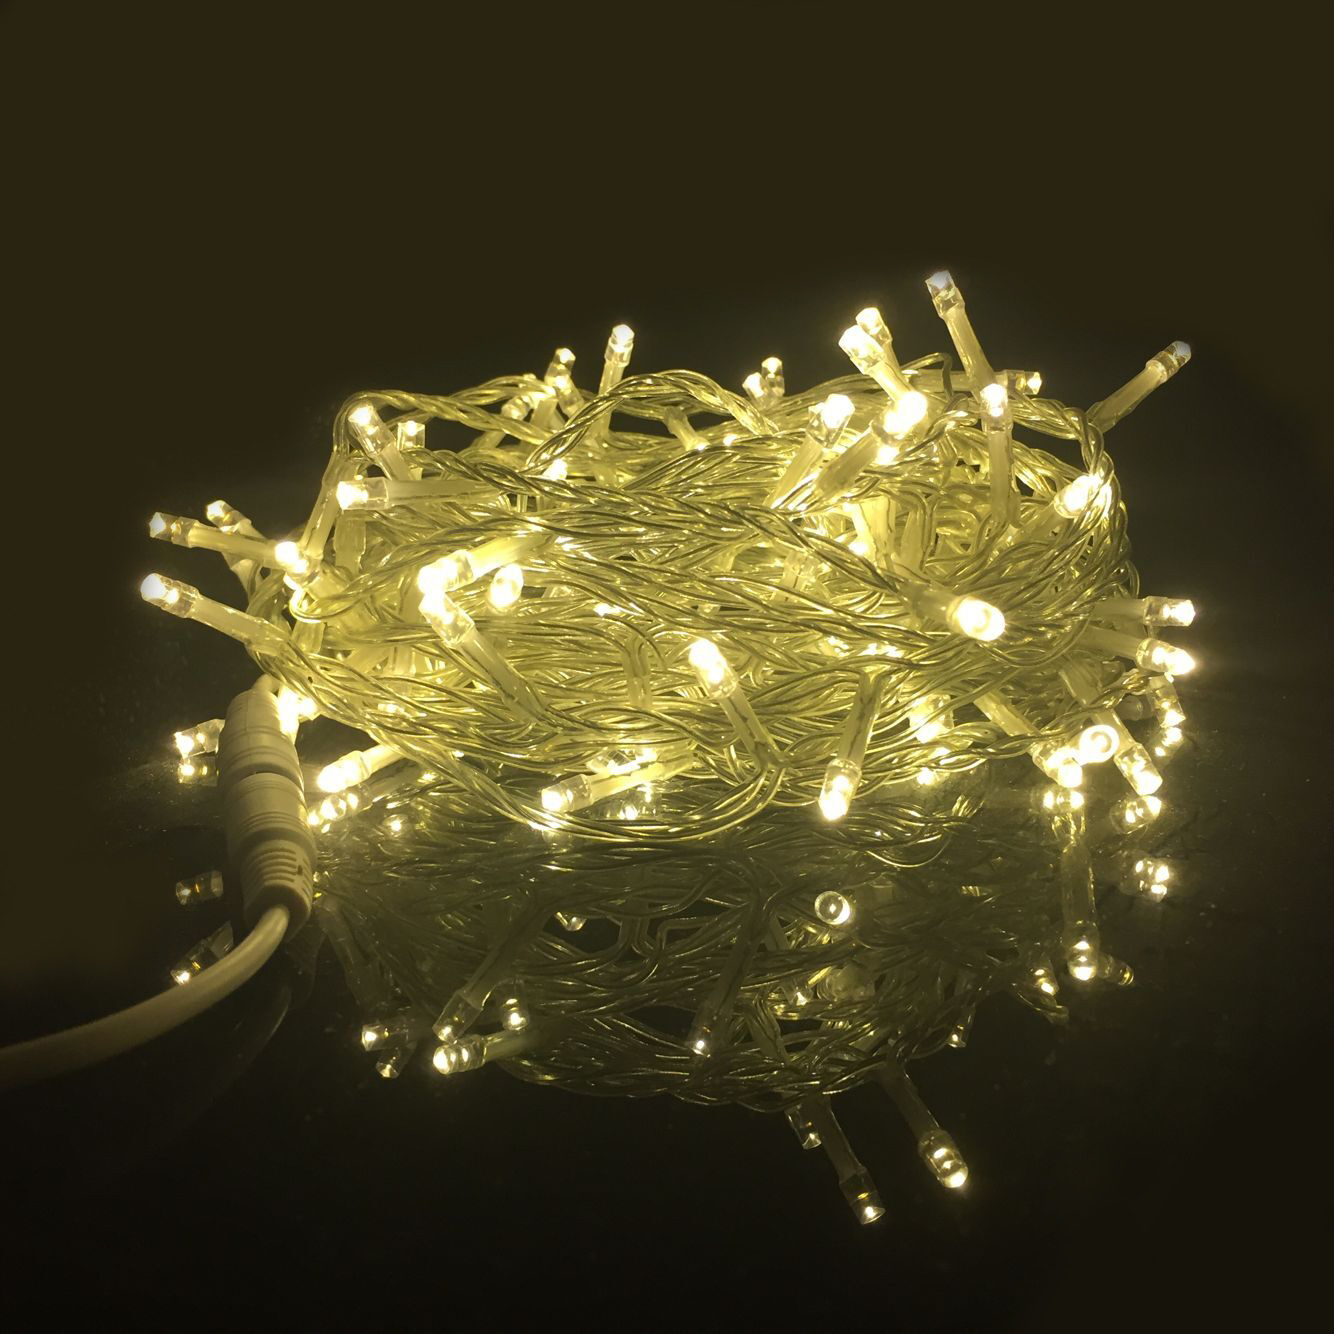 Fairy Led String Light Dc12v 10m 20m 30m 50m 100m Warm White Christmas Wedding Party Holiday Decoration Waterproof Garland